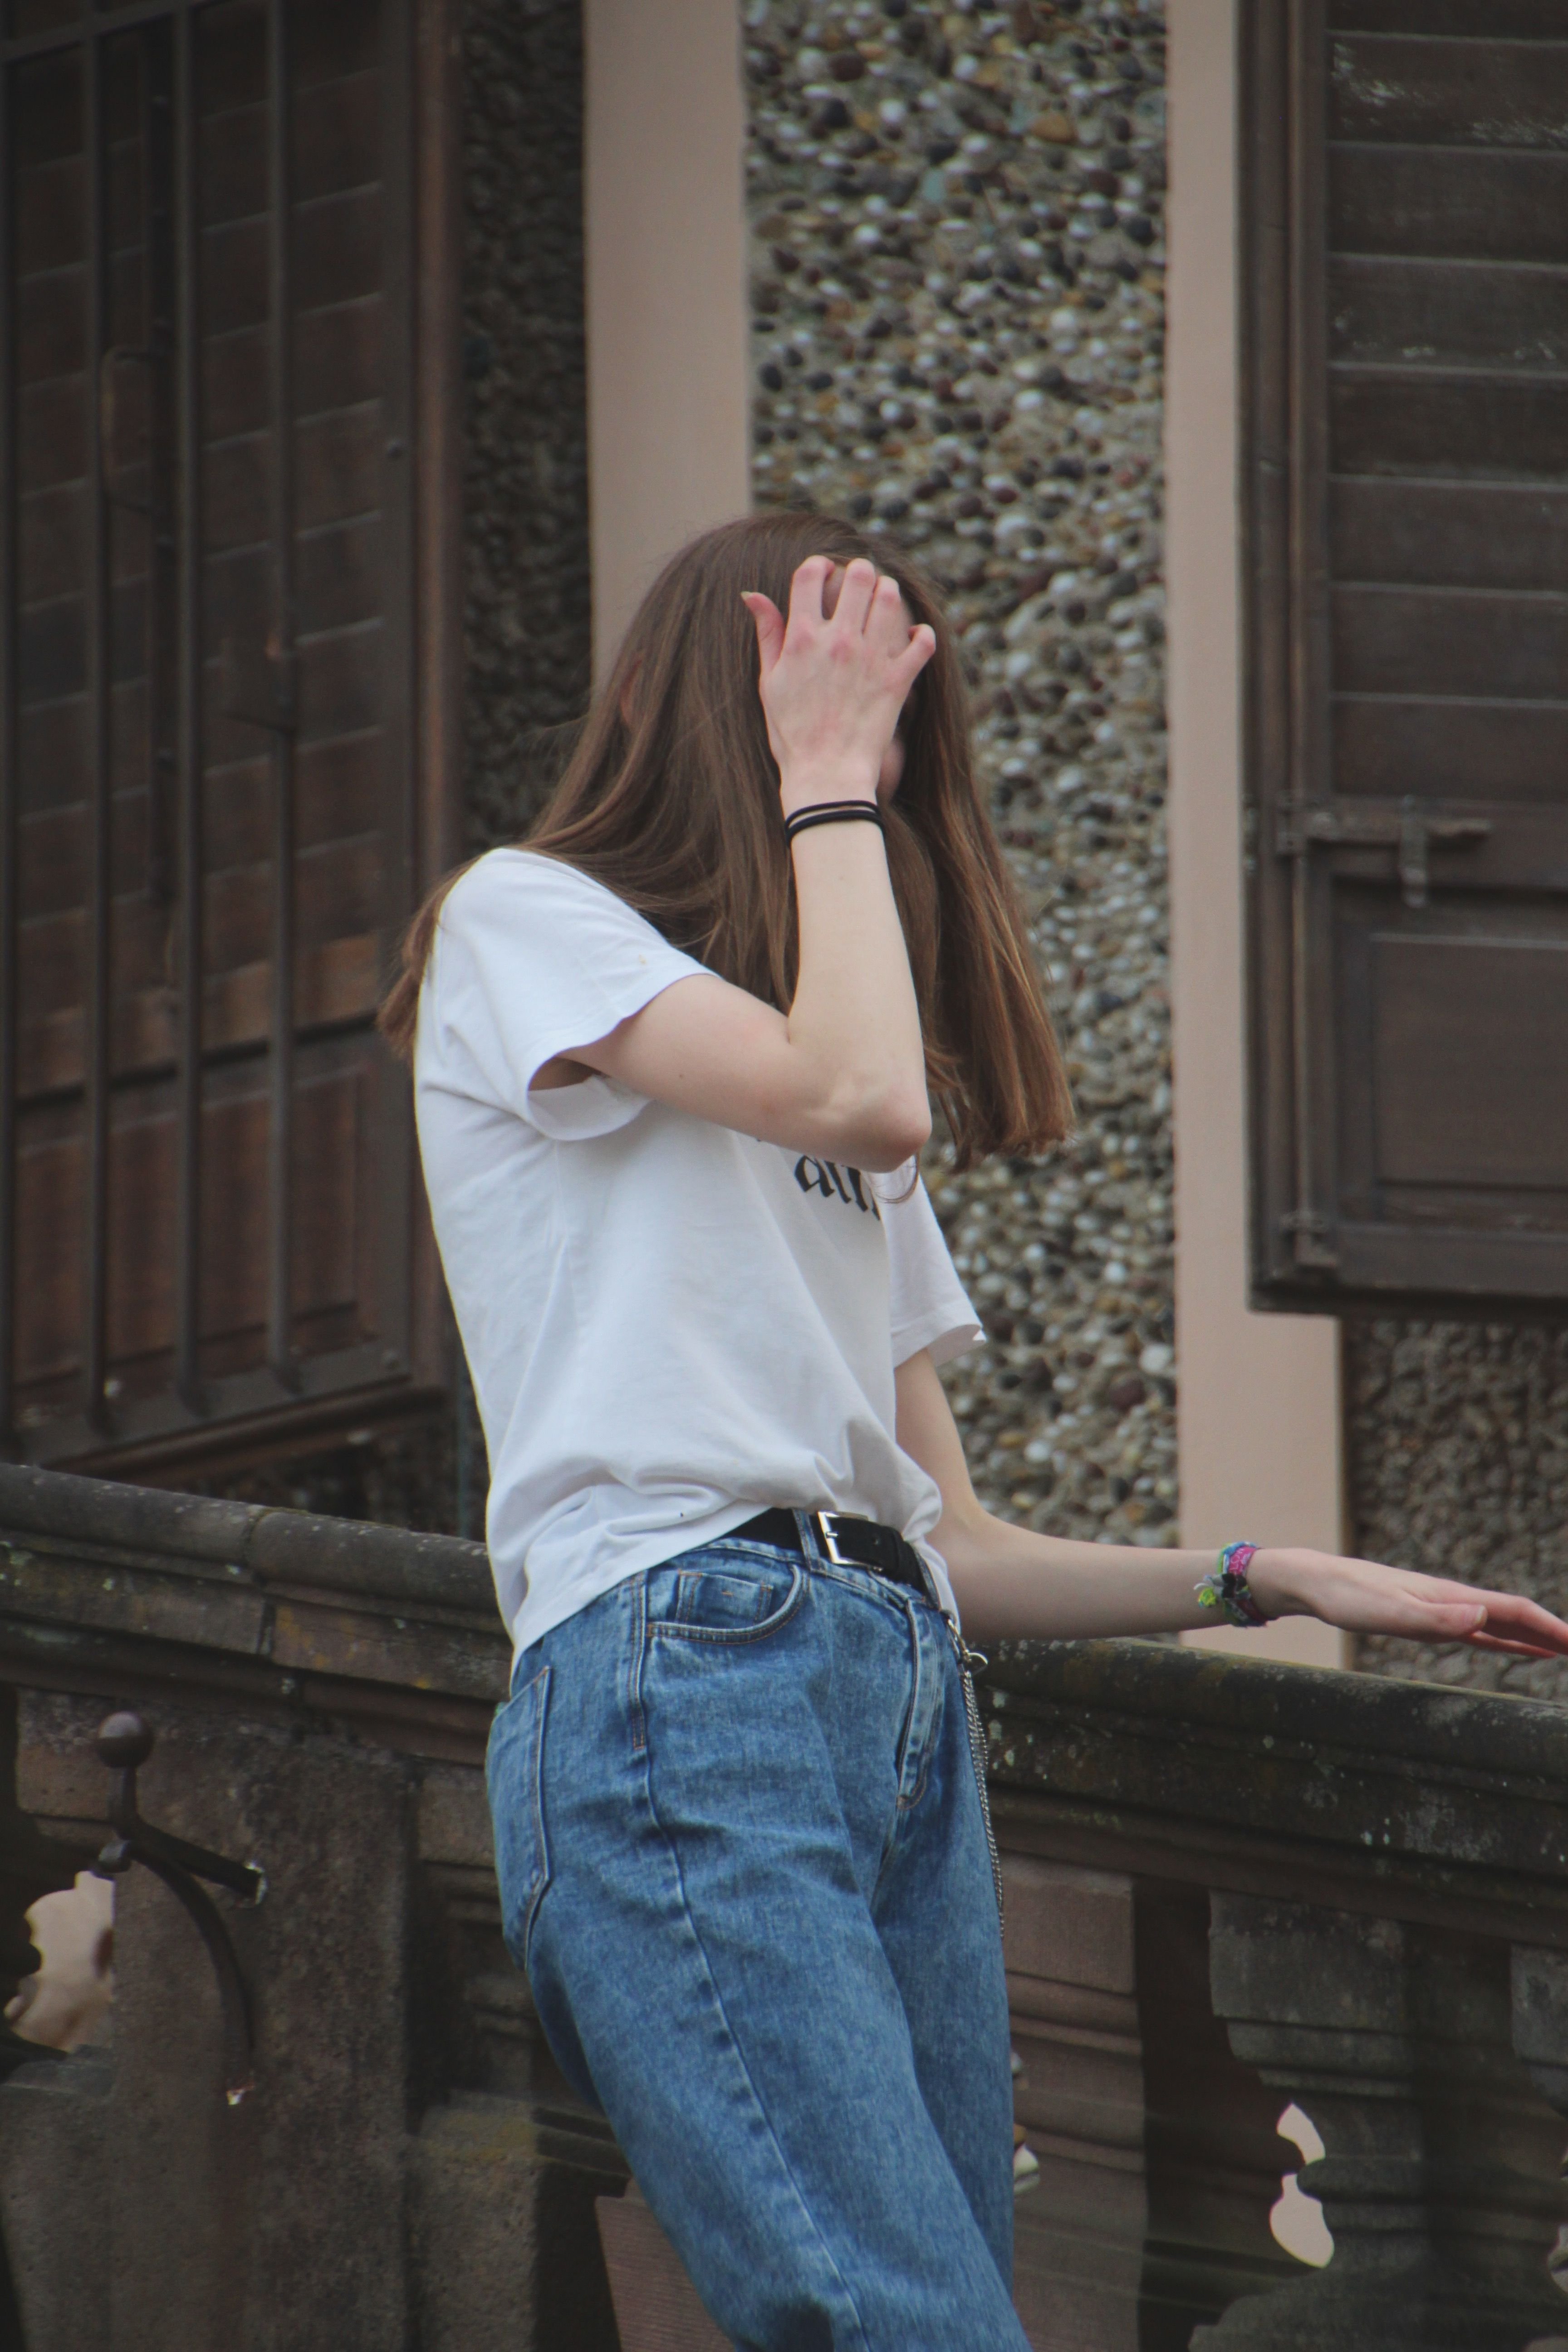 No Face Pose Face Aesthetic Girl Photography Poses Face Photography